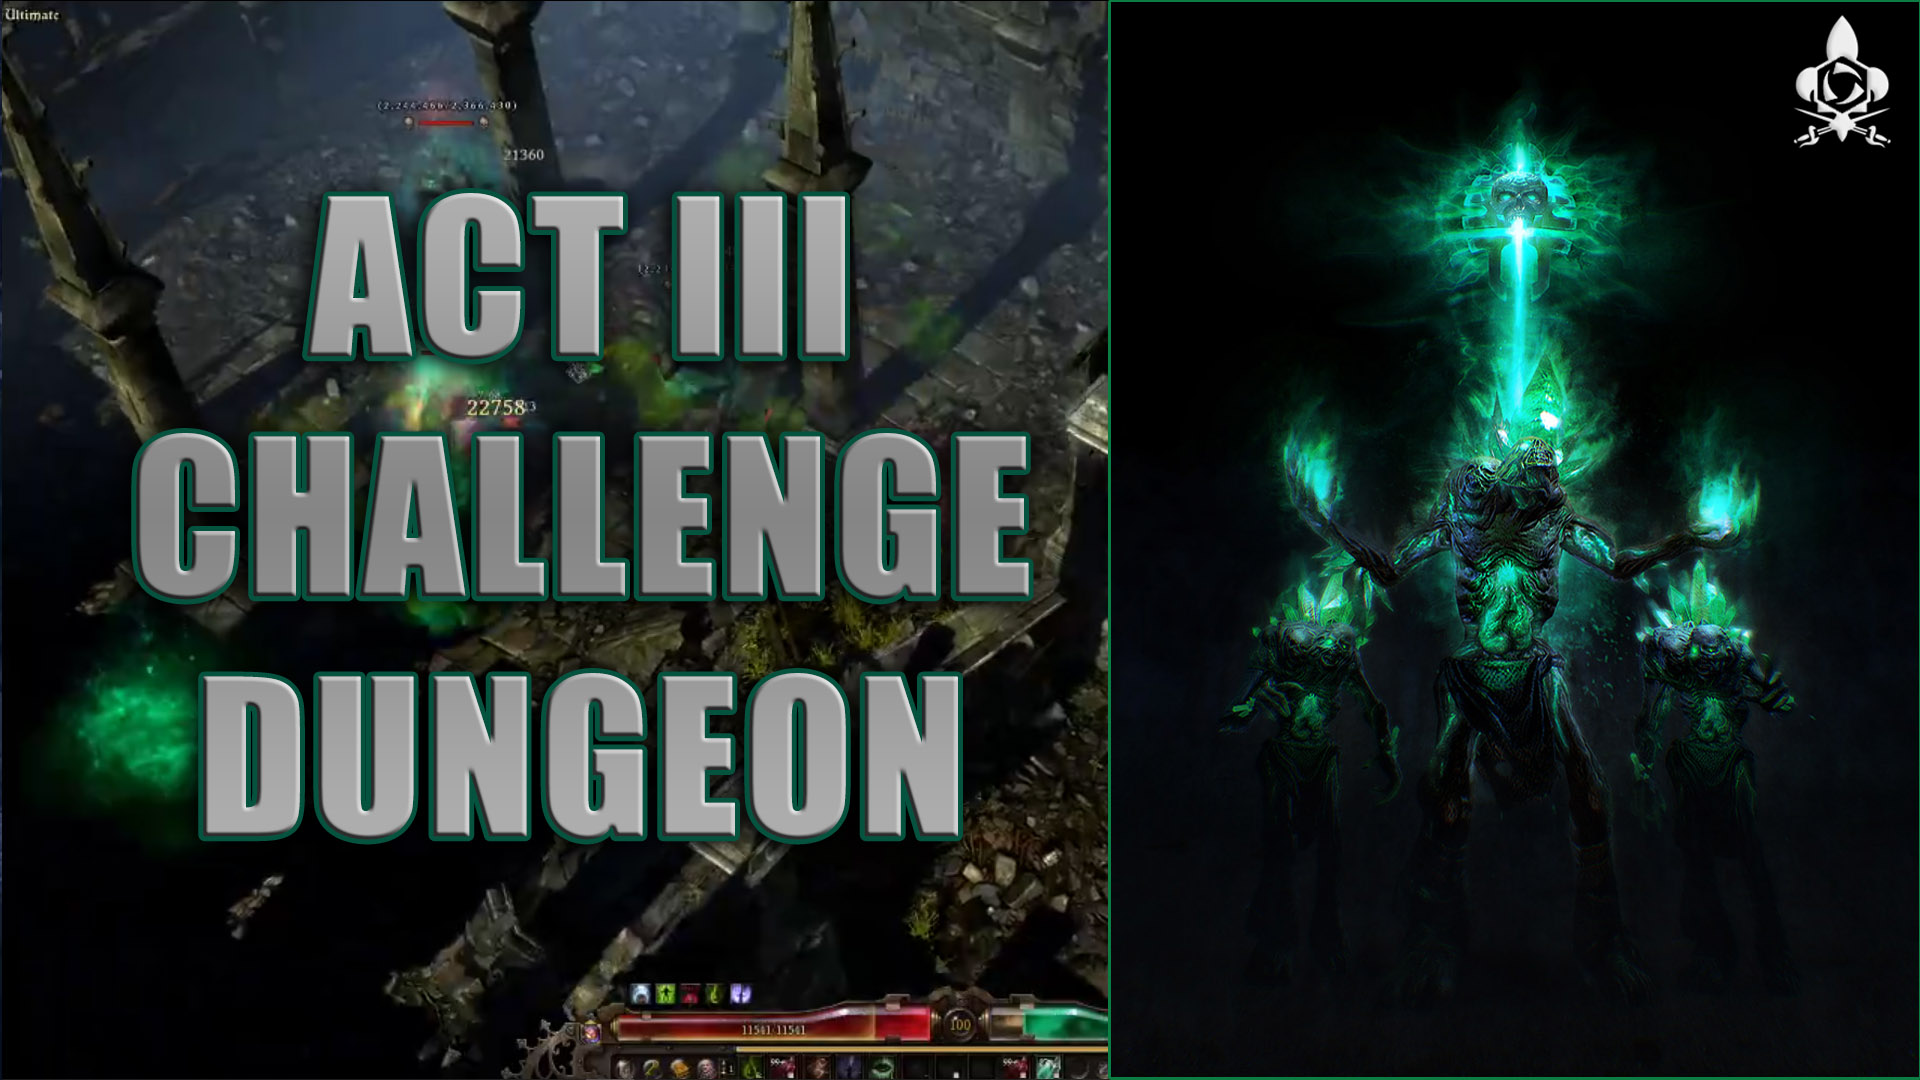 act III dungeon challenge